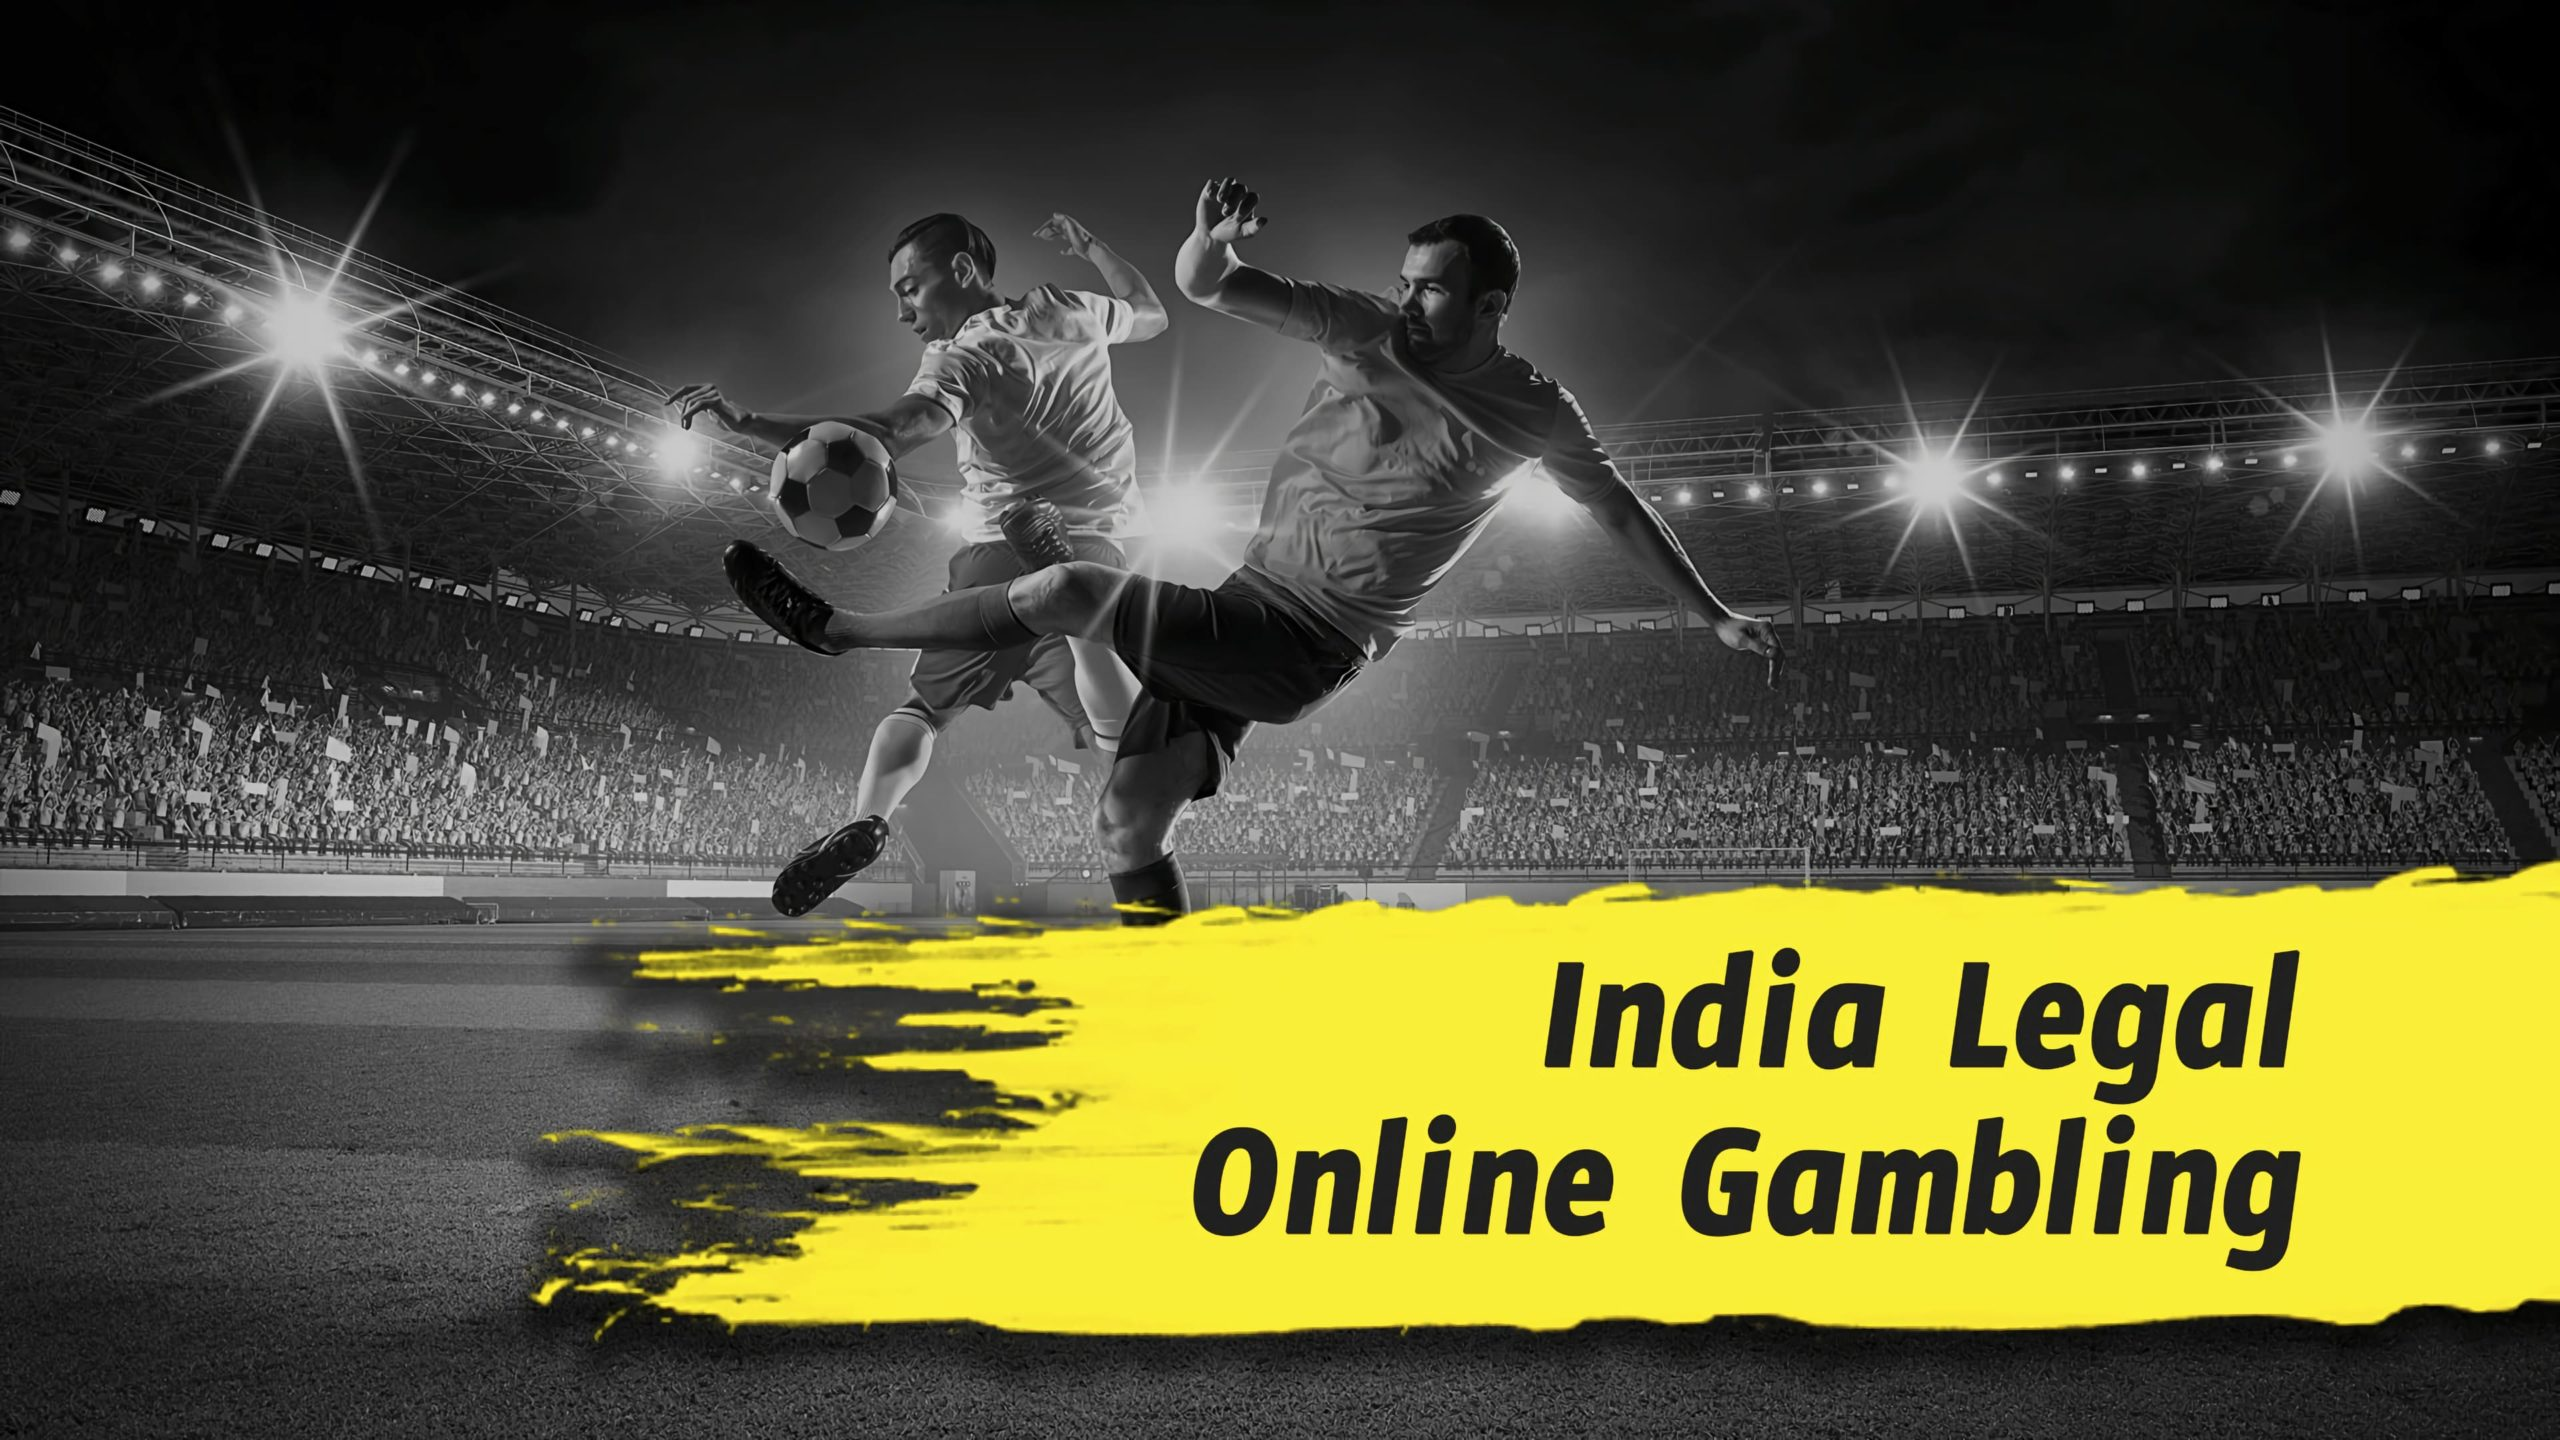 Is betting legal in India?